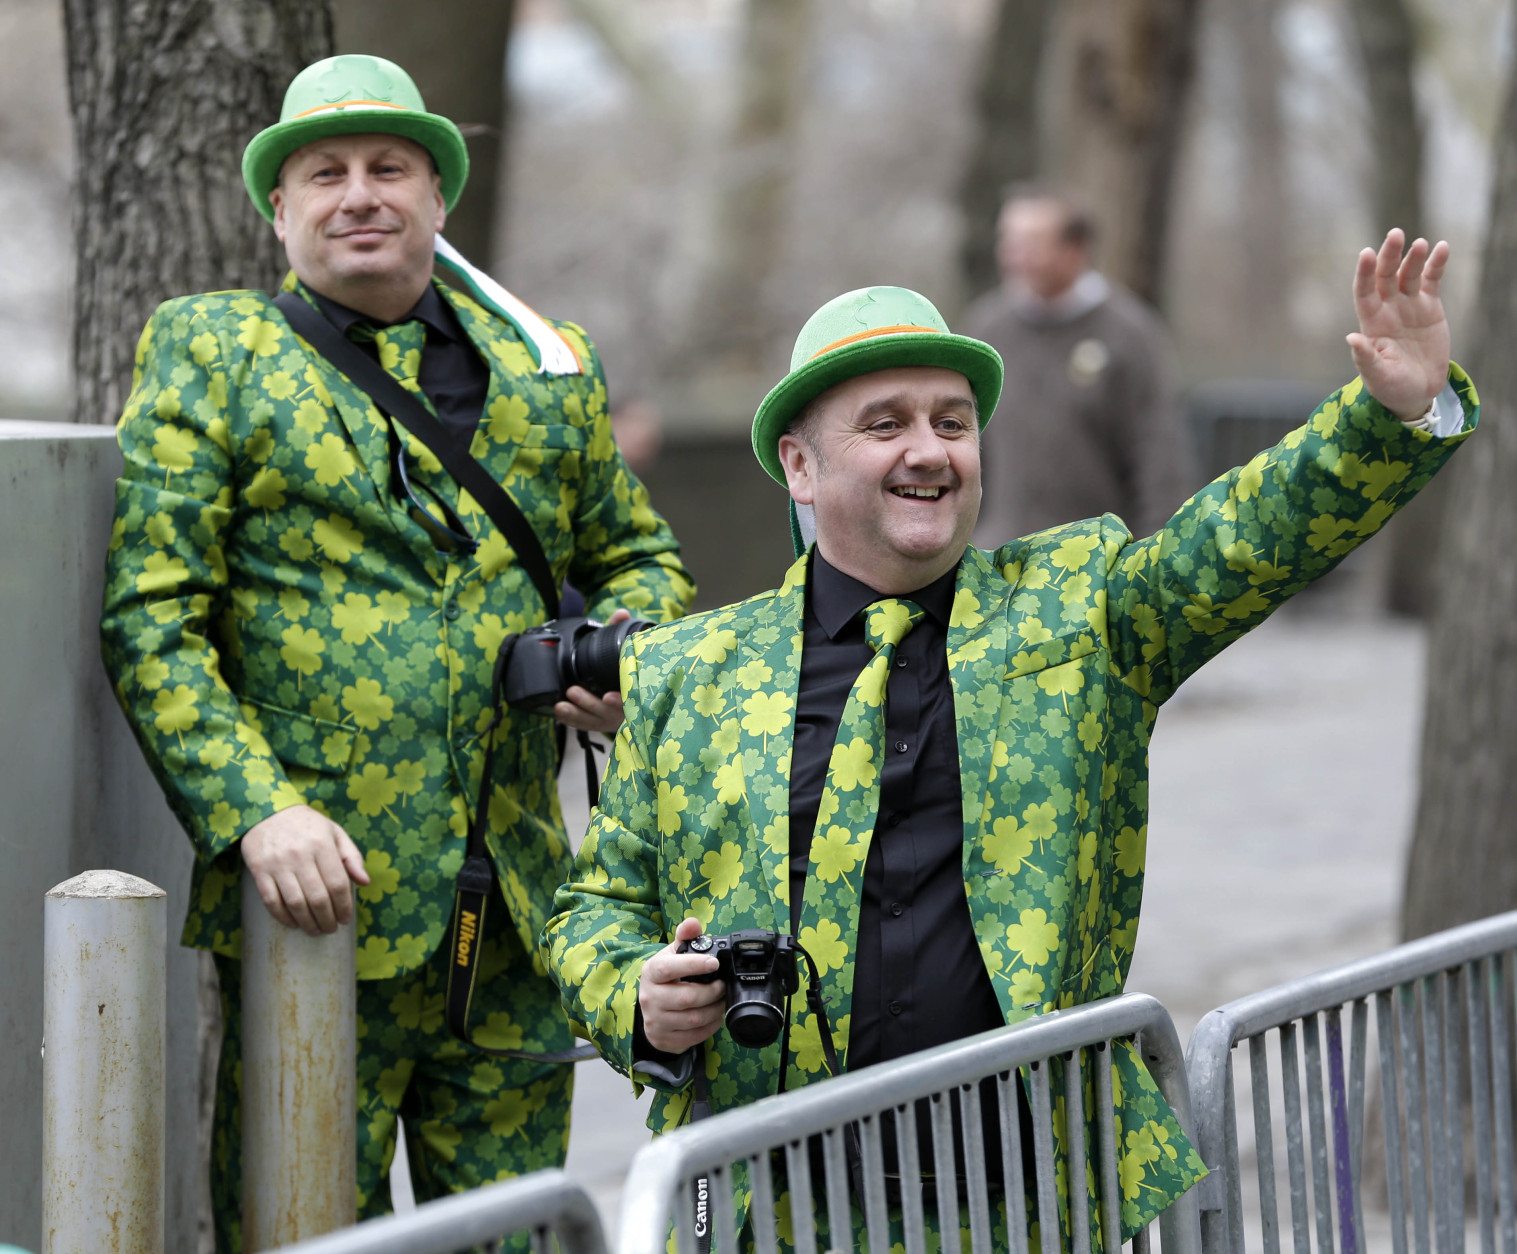 Neil Martin, right, and Martin Brown, both from Belfast, Ireland, watch the St. Patrick's Day Parade in New York, Tuesday, March 17, 2015. (AP Photo/Seth Wenig)